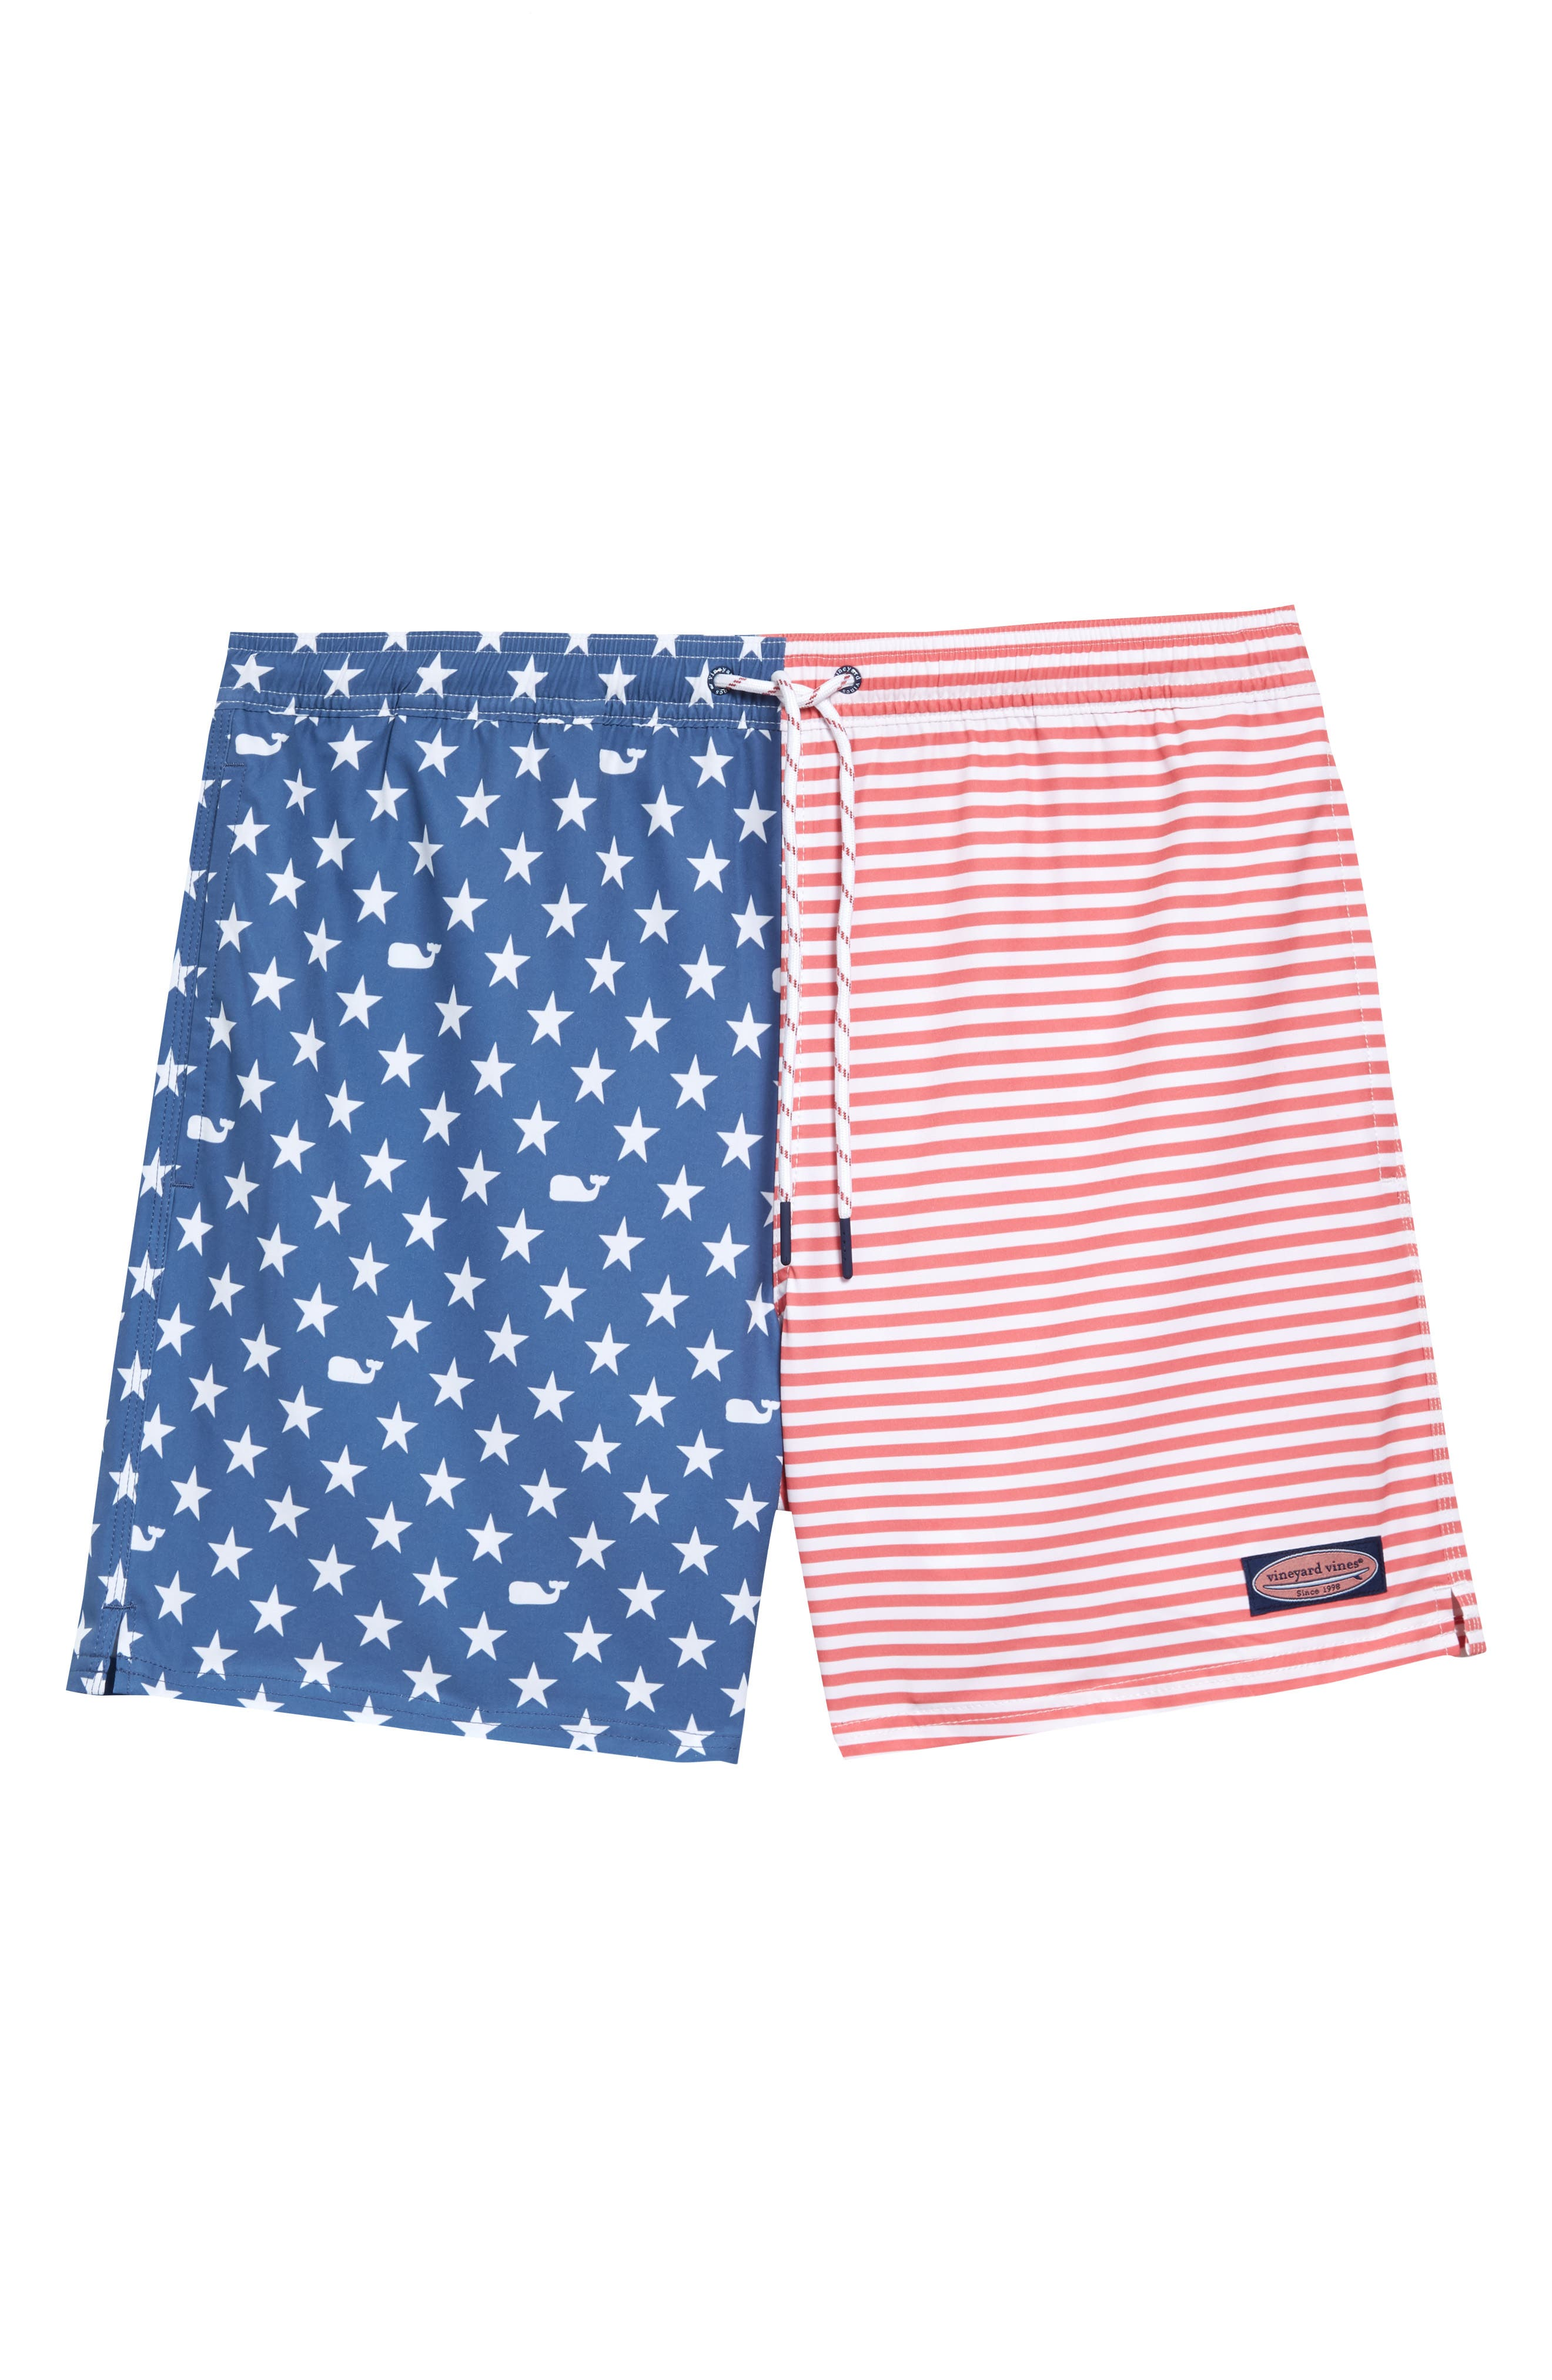 Microstripes add to the coolness of swim trunks cut from stretchy, quick-drying fabric for comfort in and out of the water. Style Name: Vineyard Vines Chappy Stripe Swim Trunks. Style Number: 6027581. Available in stores.